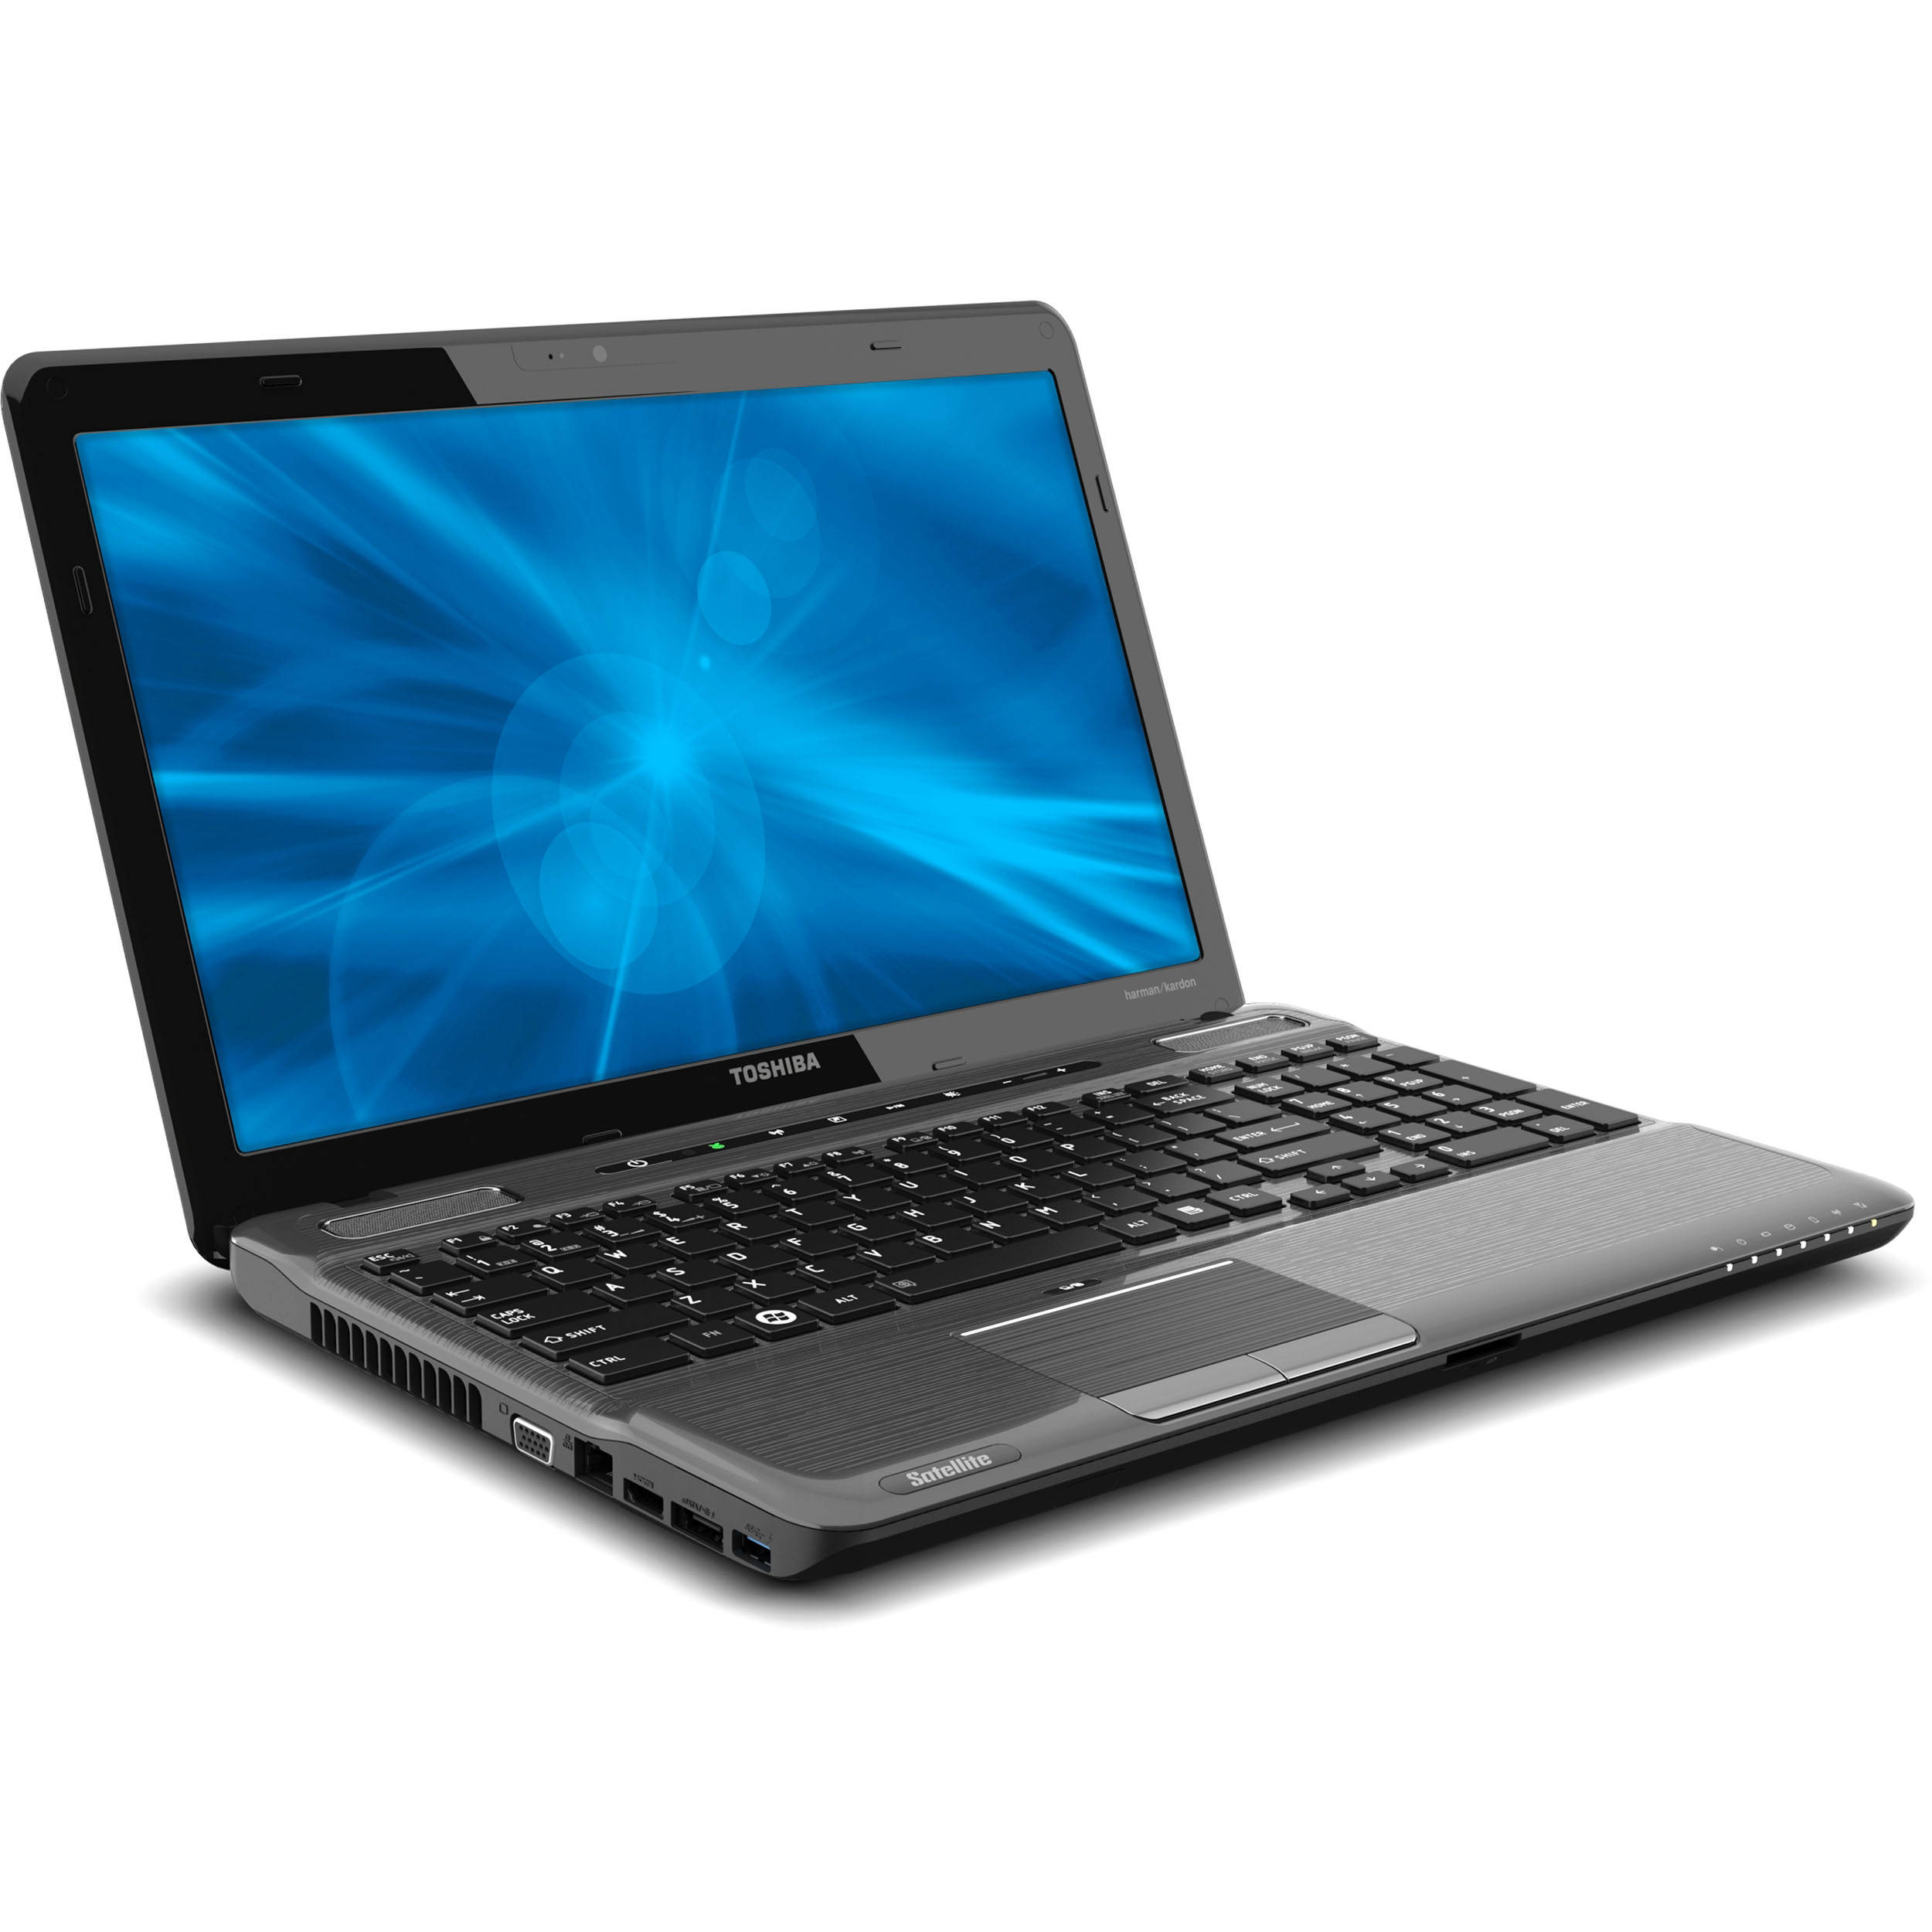 Toshiba Satellite P750 Assist Mac